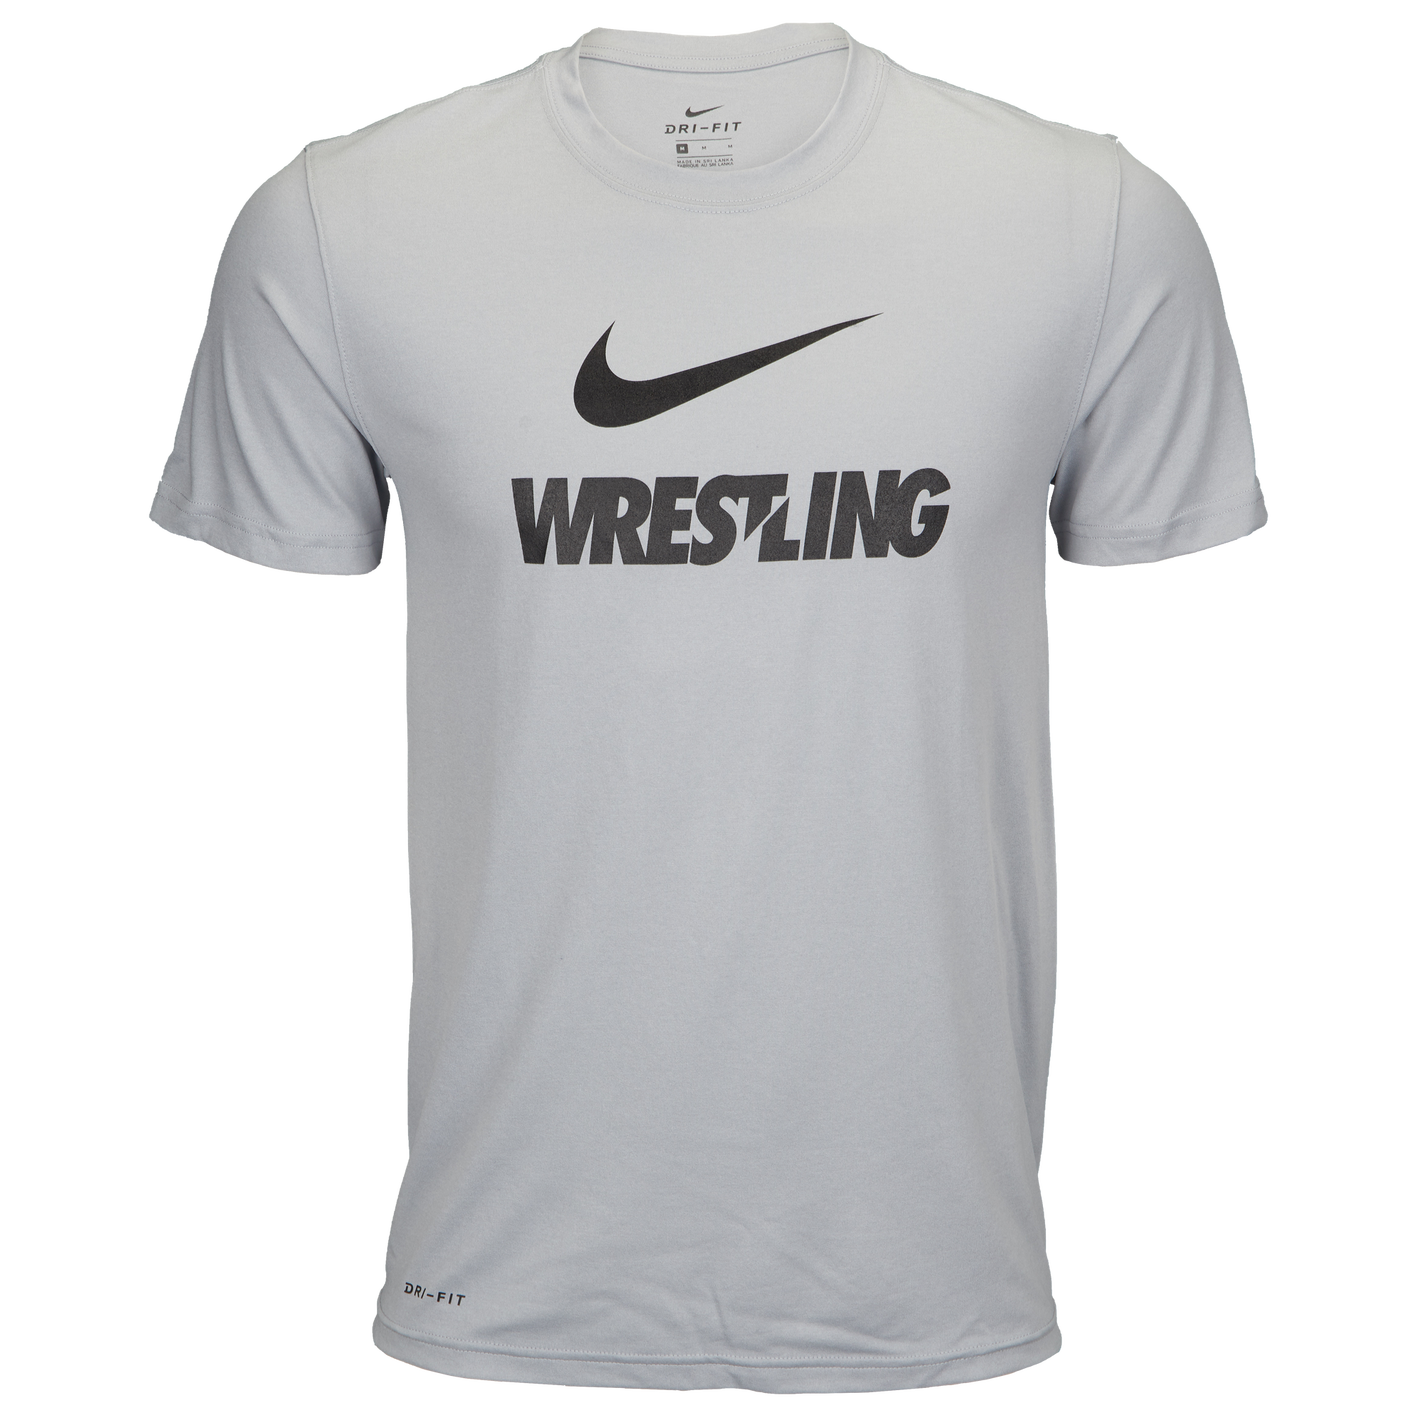 7fd343fd3 Nike Dri-Fit Training T-Shirt - Men's - Wrestling - Clothing - Grey ...